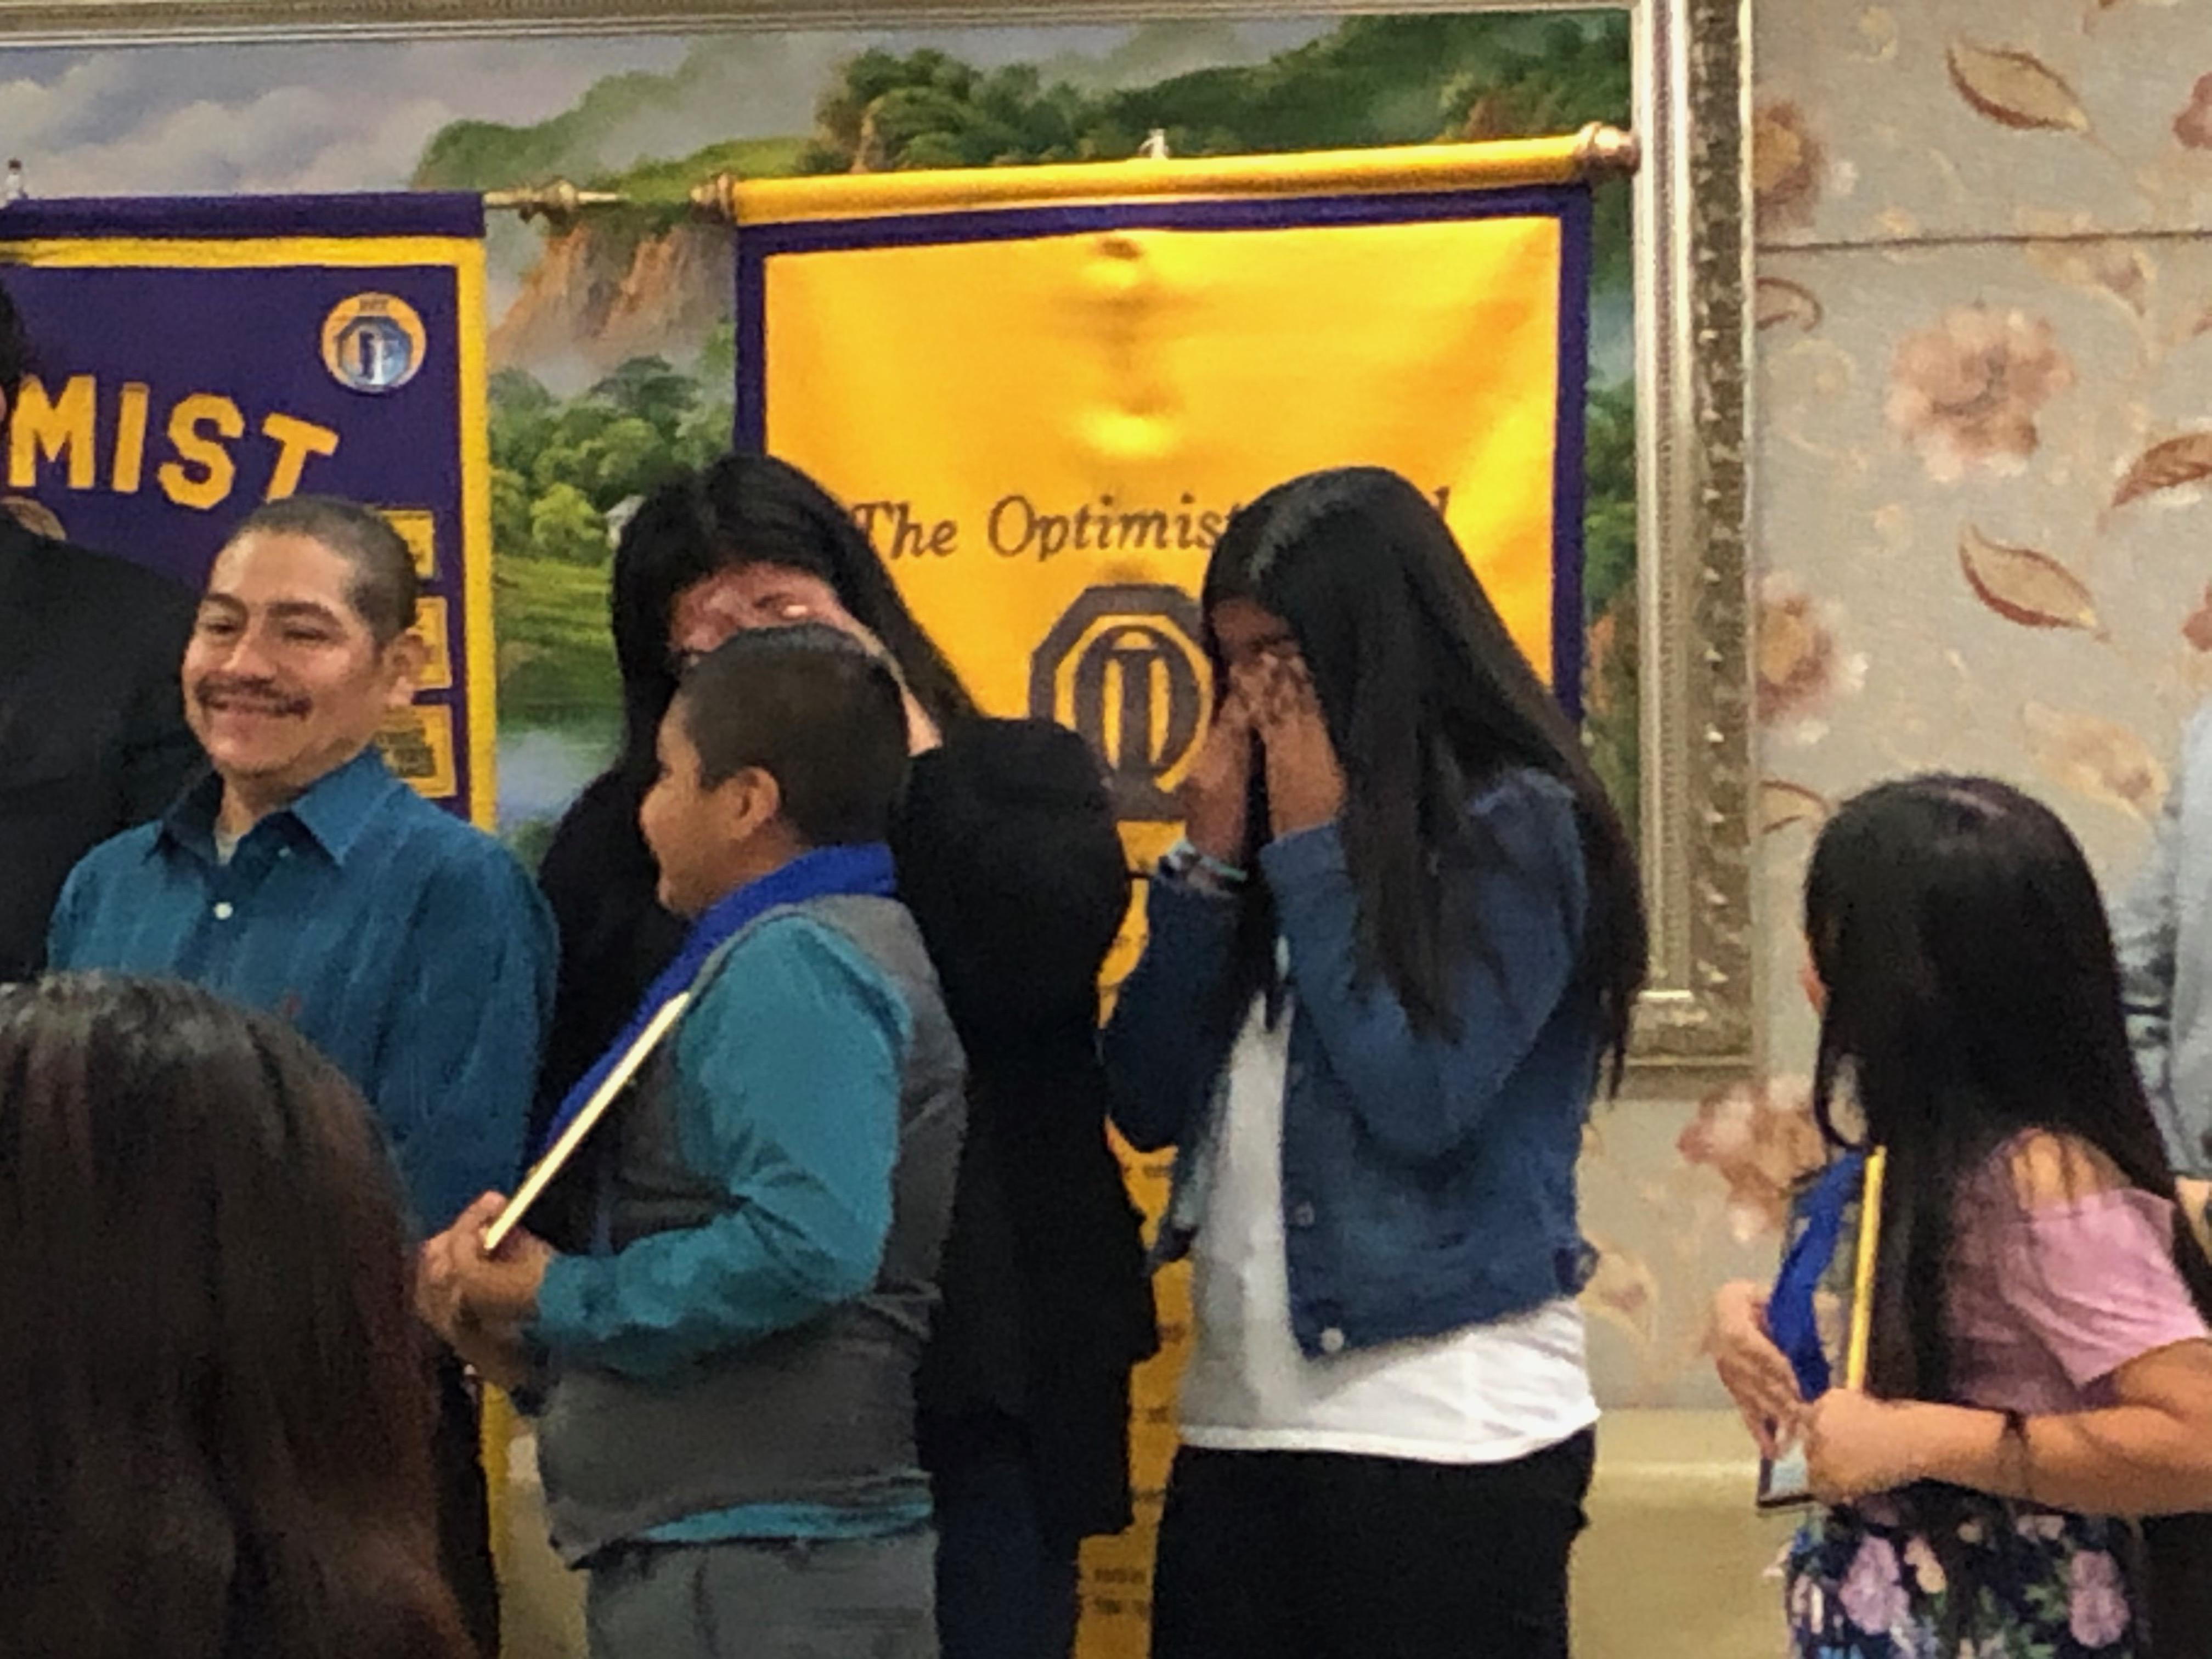 Congratulations to Shirley Segura, Lauro Hernandez, Ximena Zuniga, and Breanna Hernandez. Our scholars received recognition from the Optimist Club, City of Pomona Council Woman Elizabeth Ontiveros-Cole, State Assembly Man Freddie Rodriguez, State Senator Connie Leyva, and U.S. Congresswoman Norma Torres.